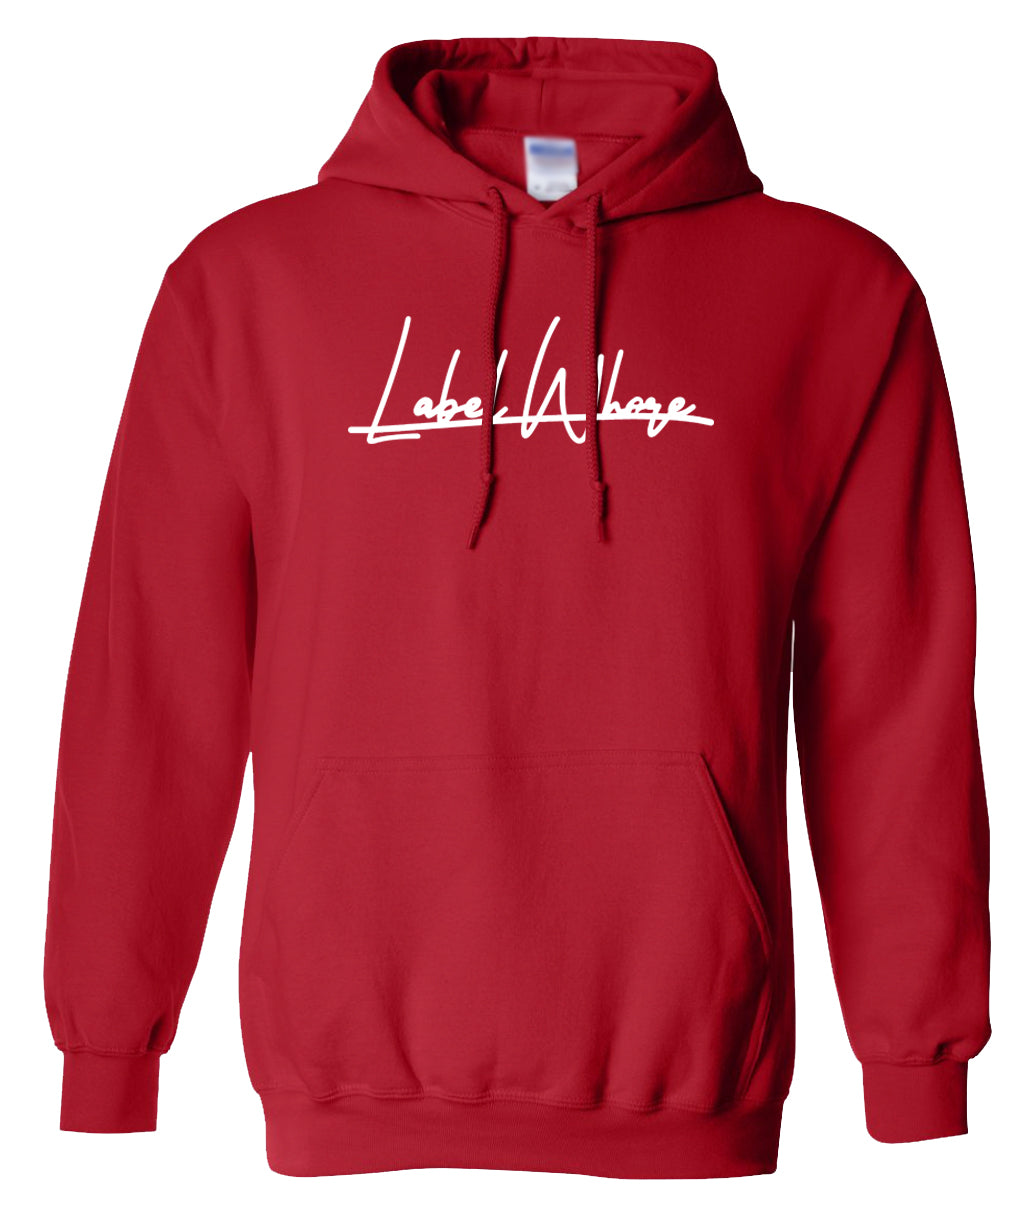 red label whore hoodie